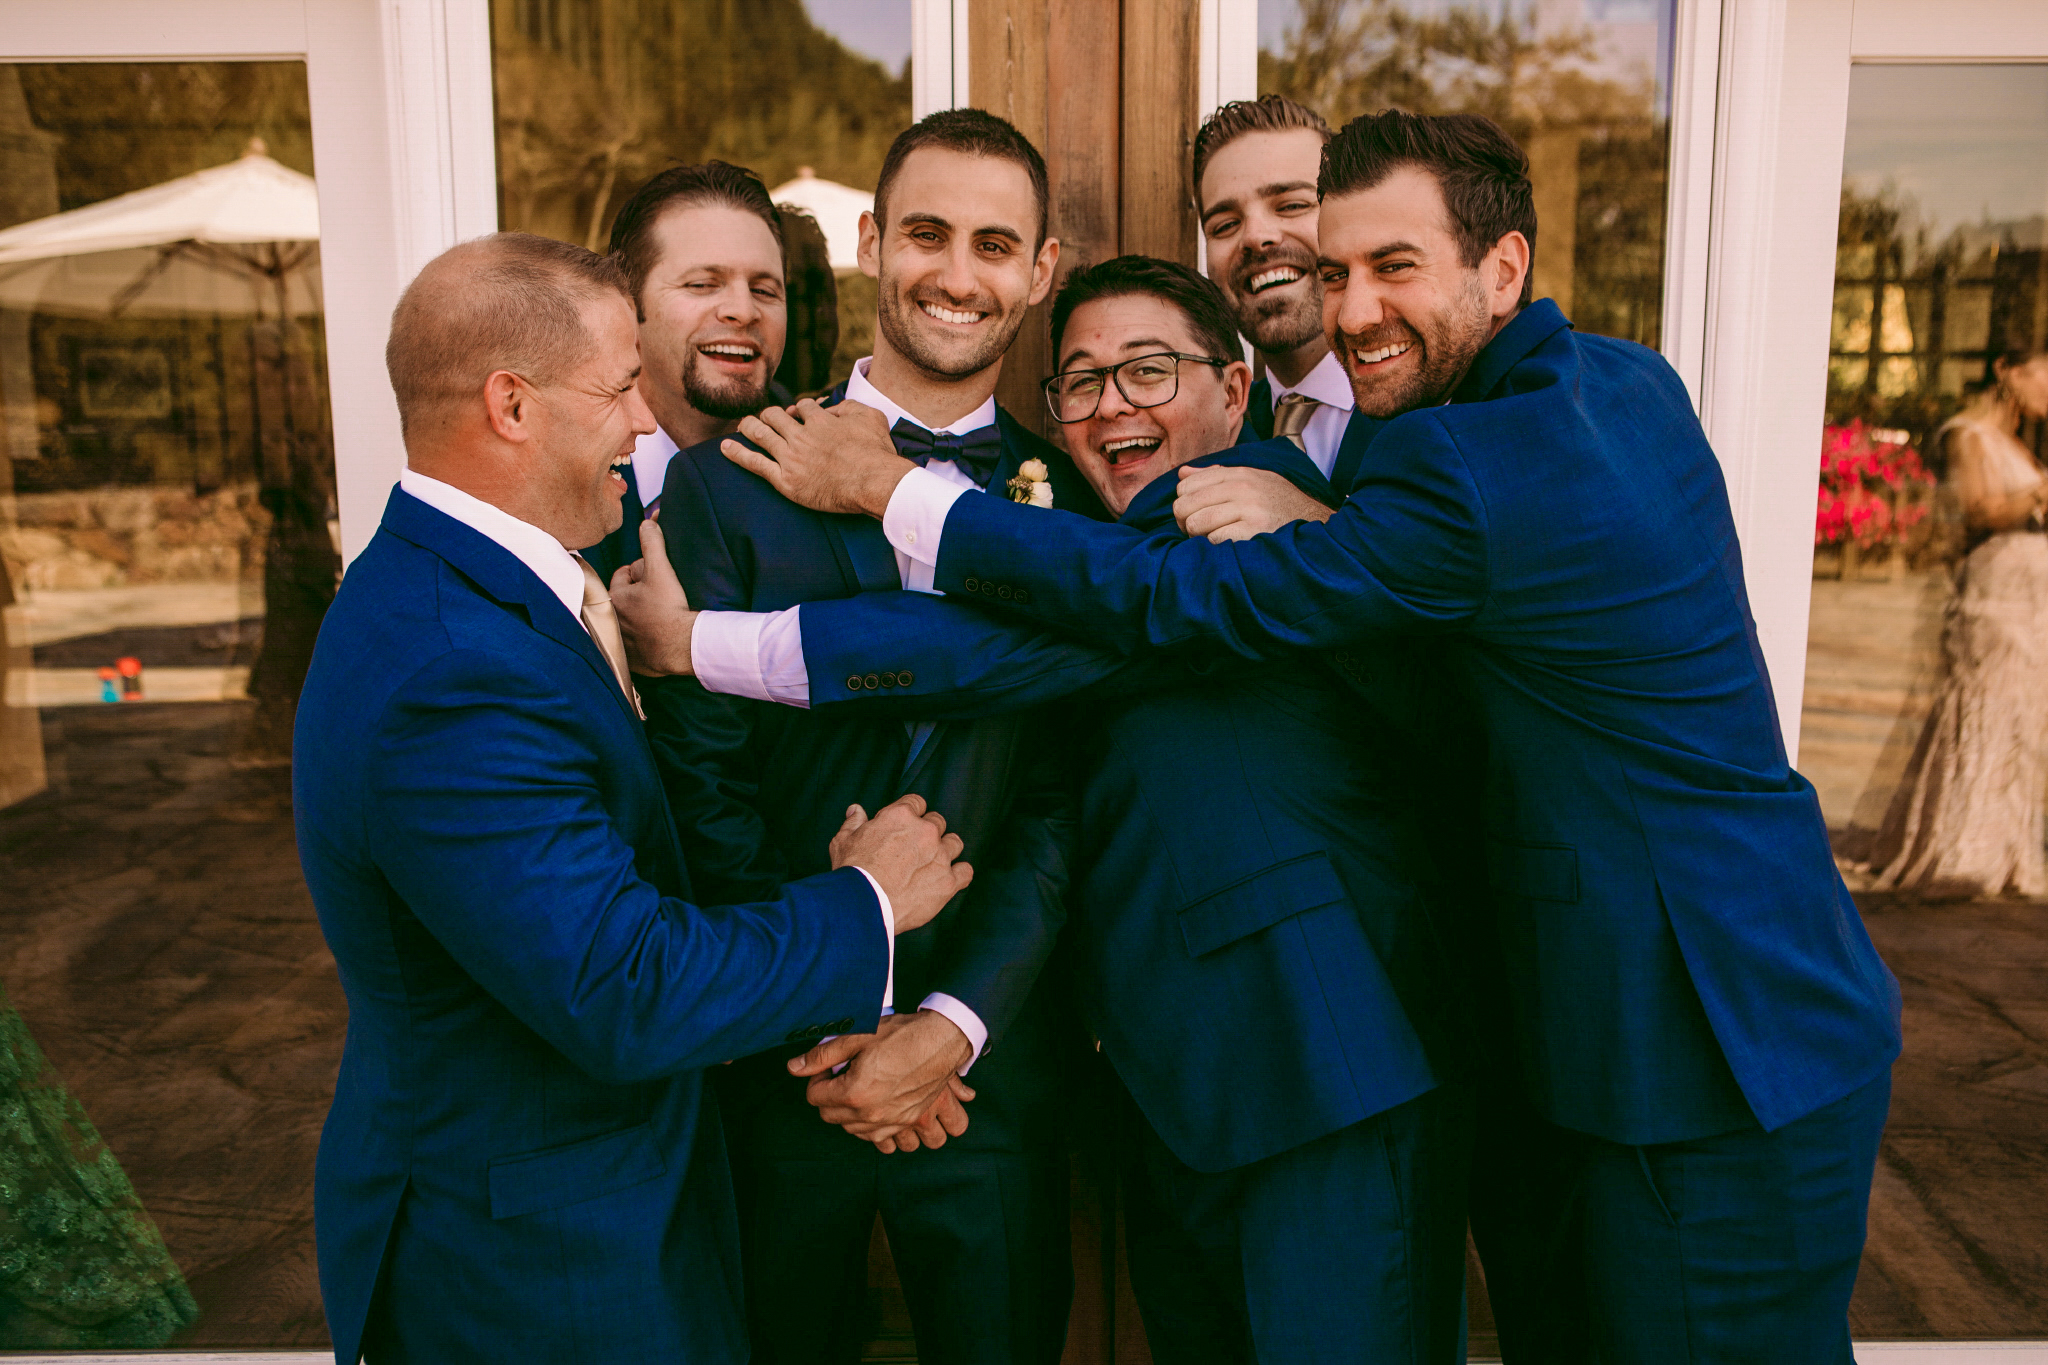 san diego wedding   photographer | group of men in blue suits hugging in front of building with   glass windows